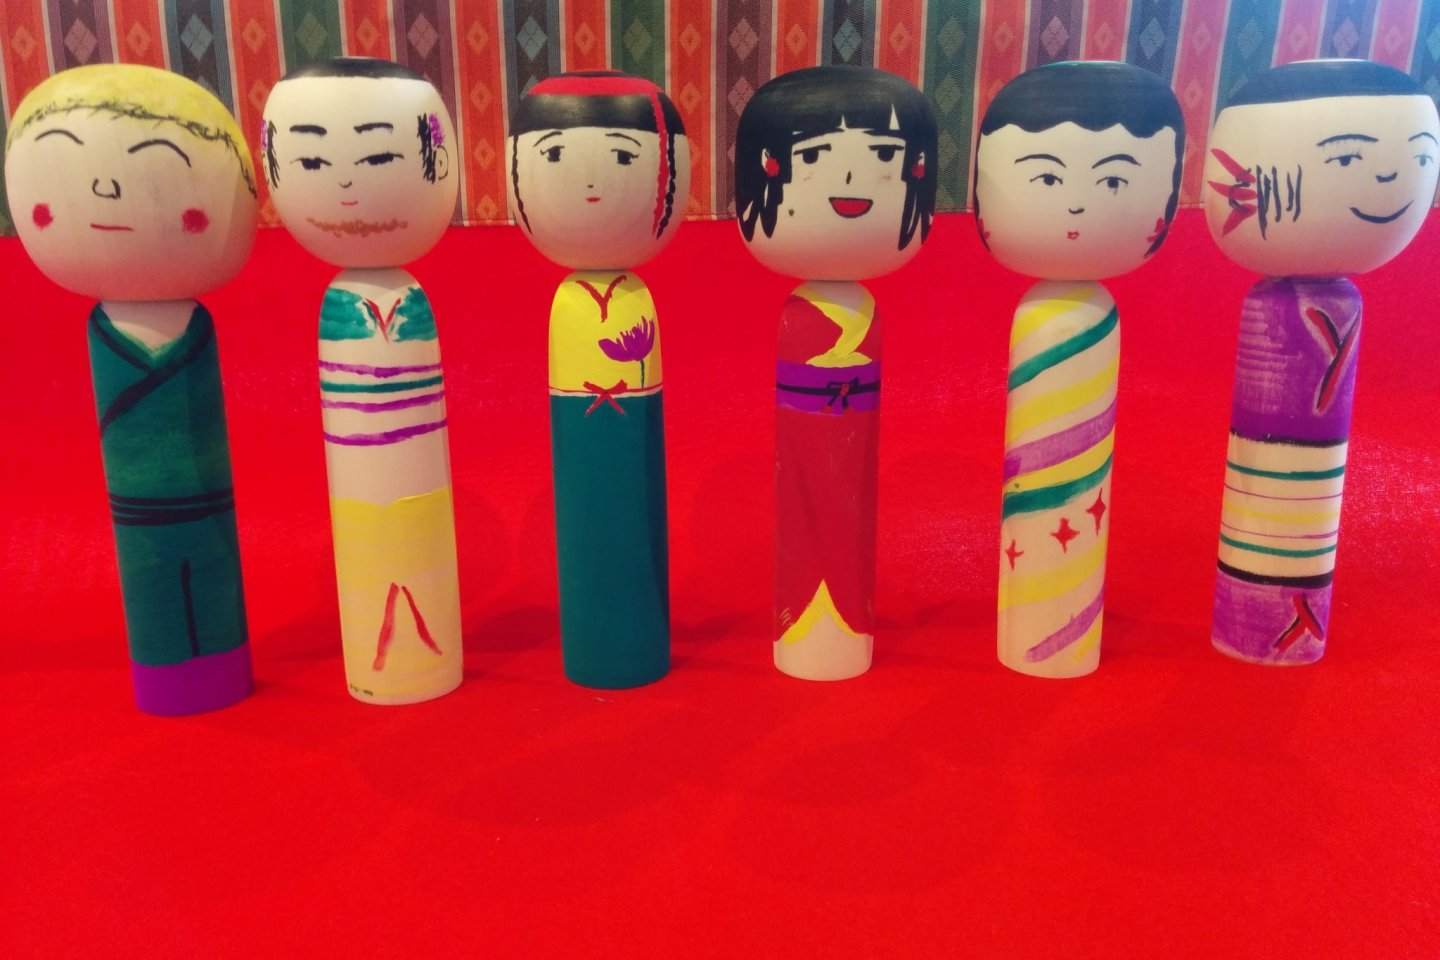 My group\'s original kokeshi. Mine is on the far left